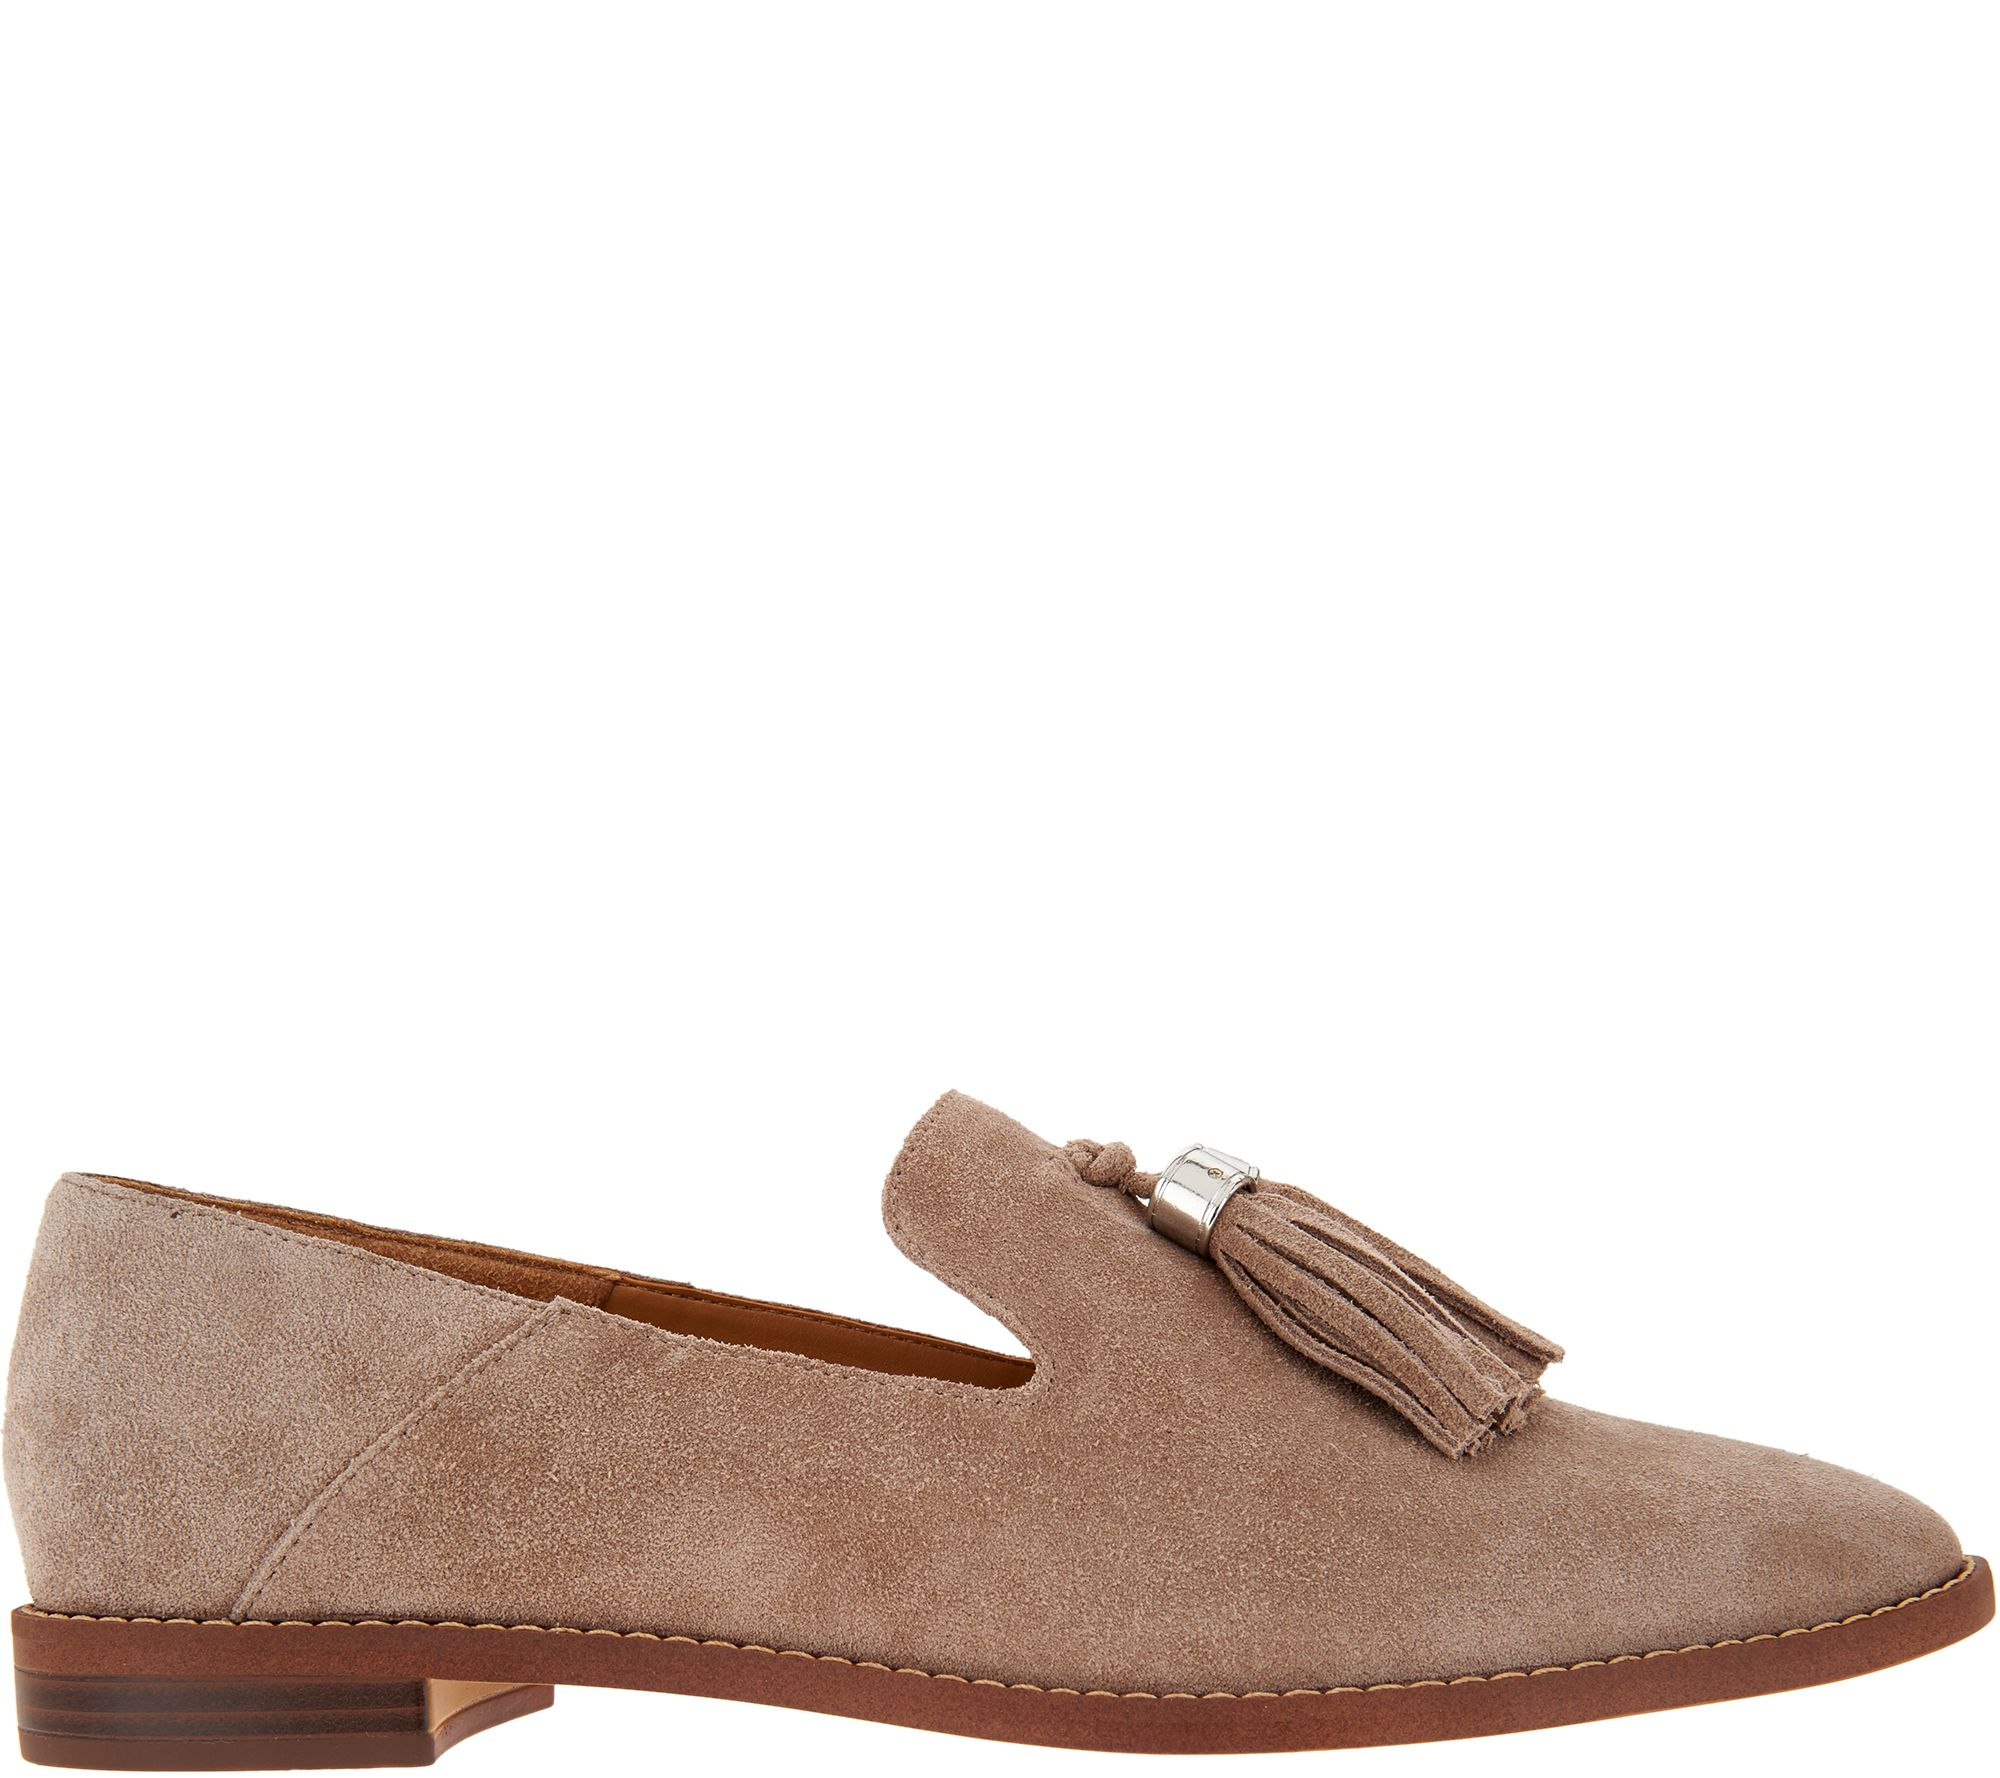 4a4f4a422b8 Franco Sarto Suede Loafers with Tassels - Hadden - Page 1 — QVC.com